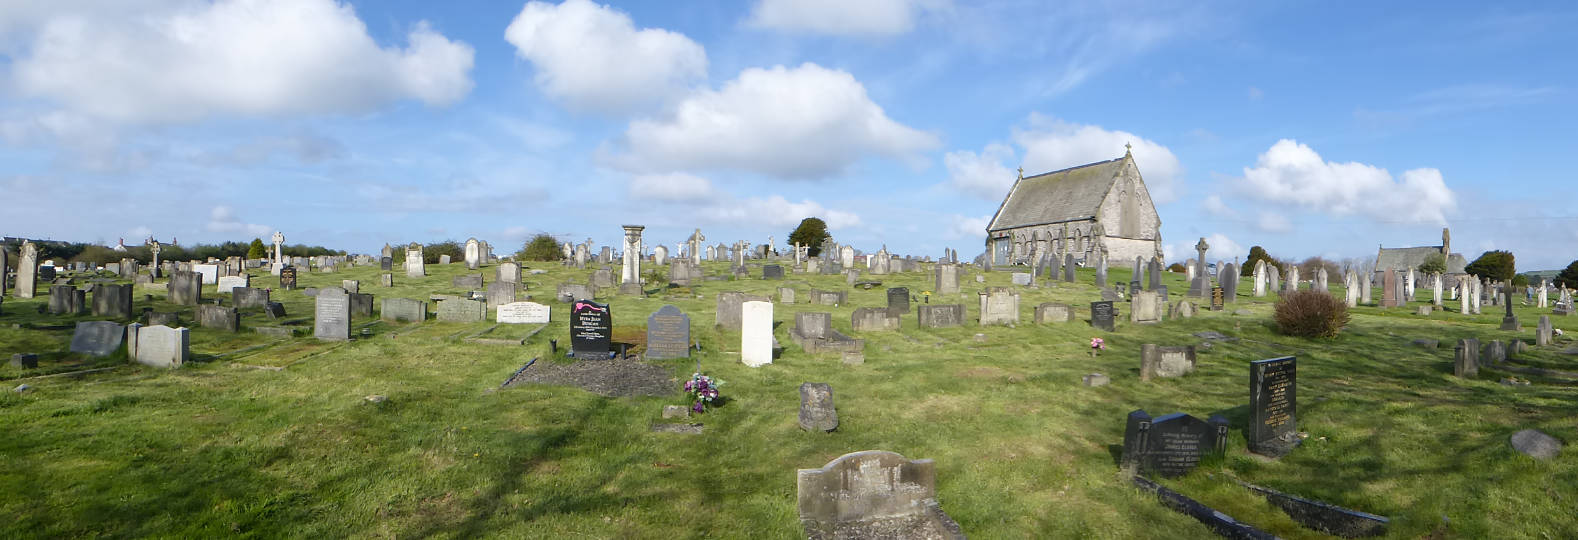 Dalton Chapel-cemetery-furness-stories-behind-the-stones-rod-white-history